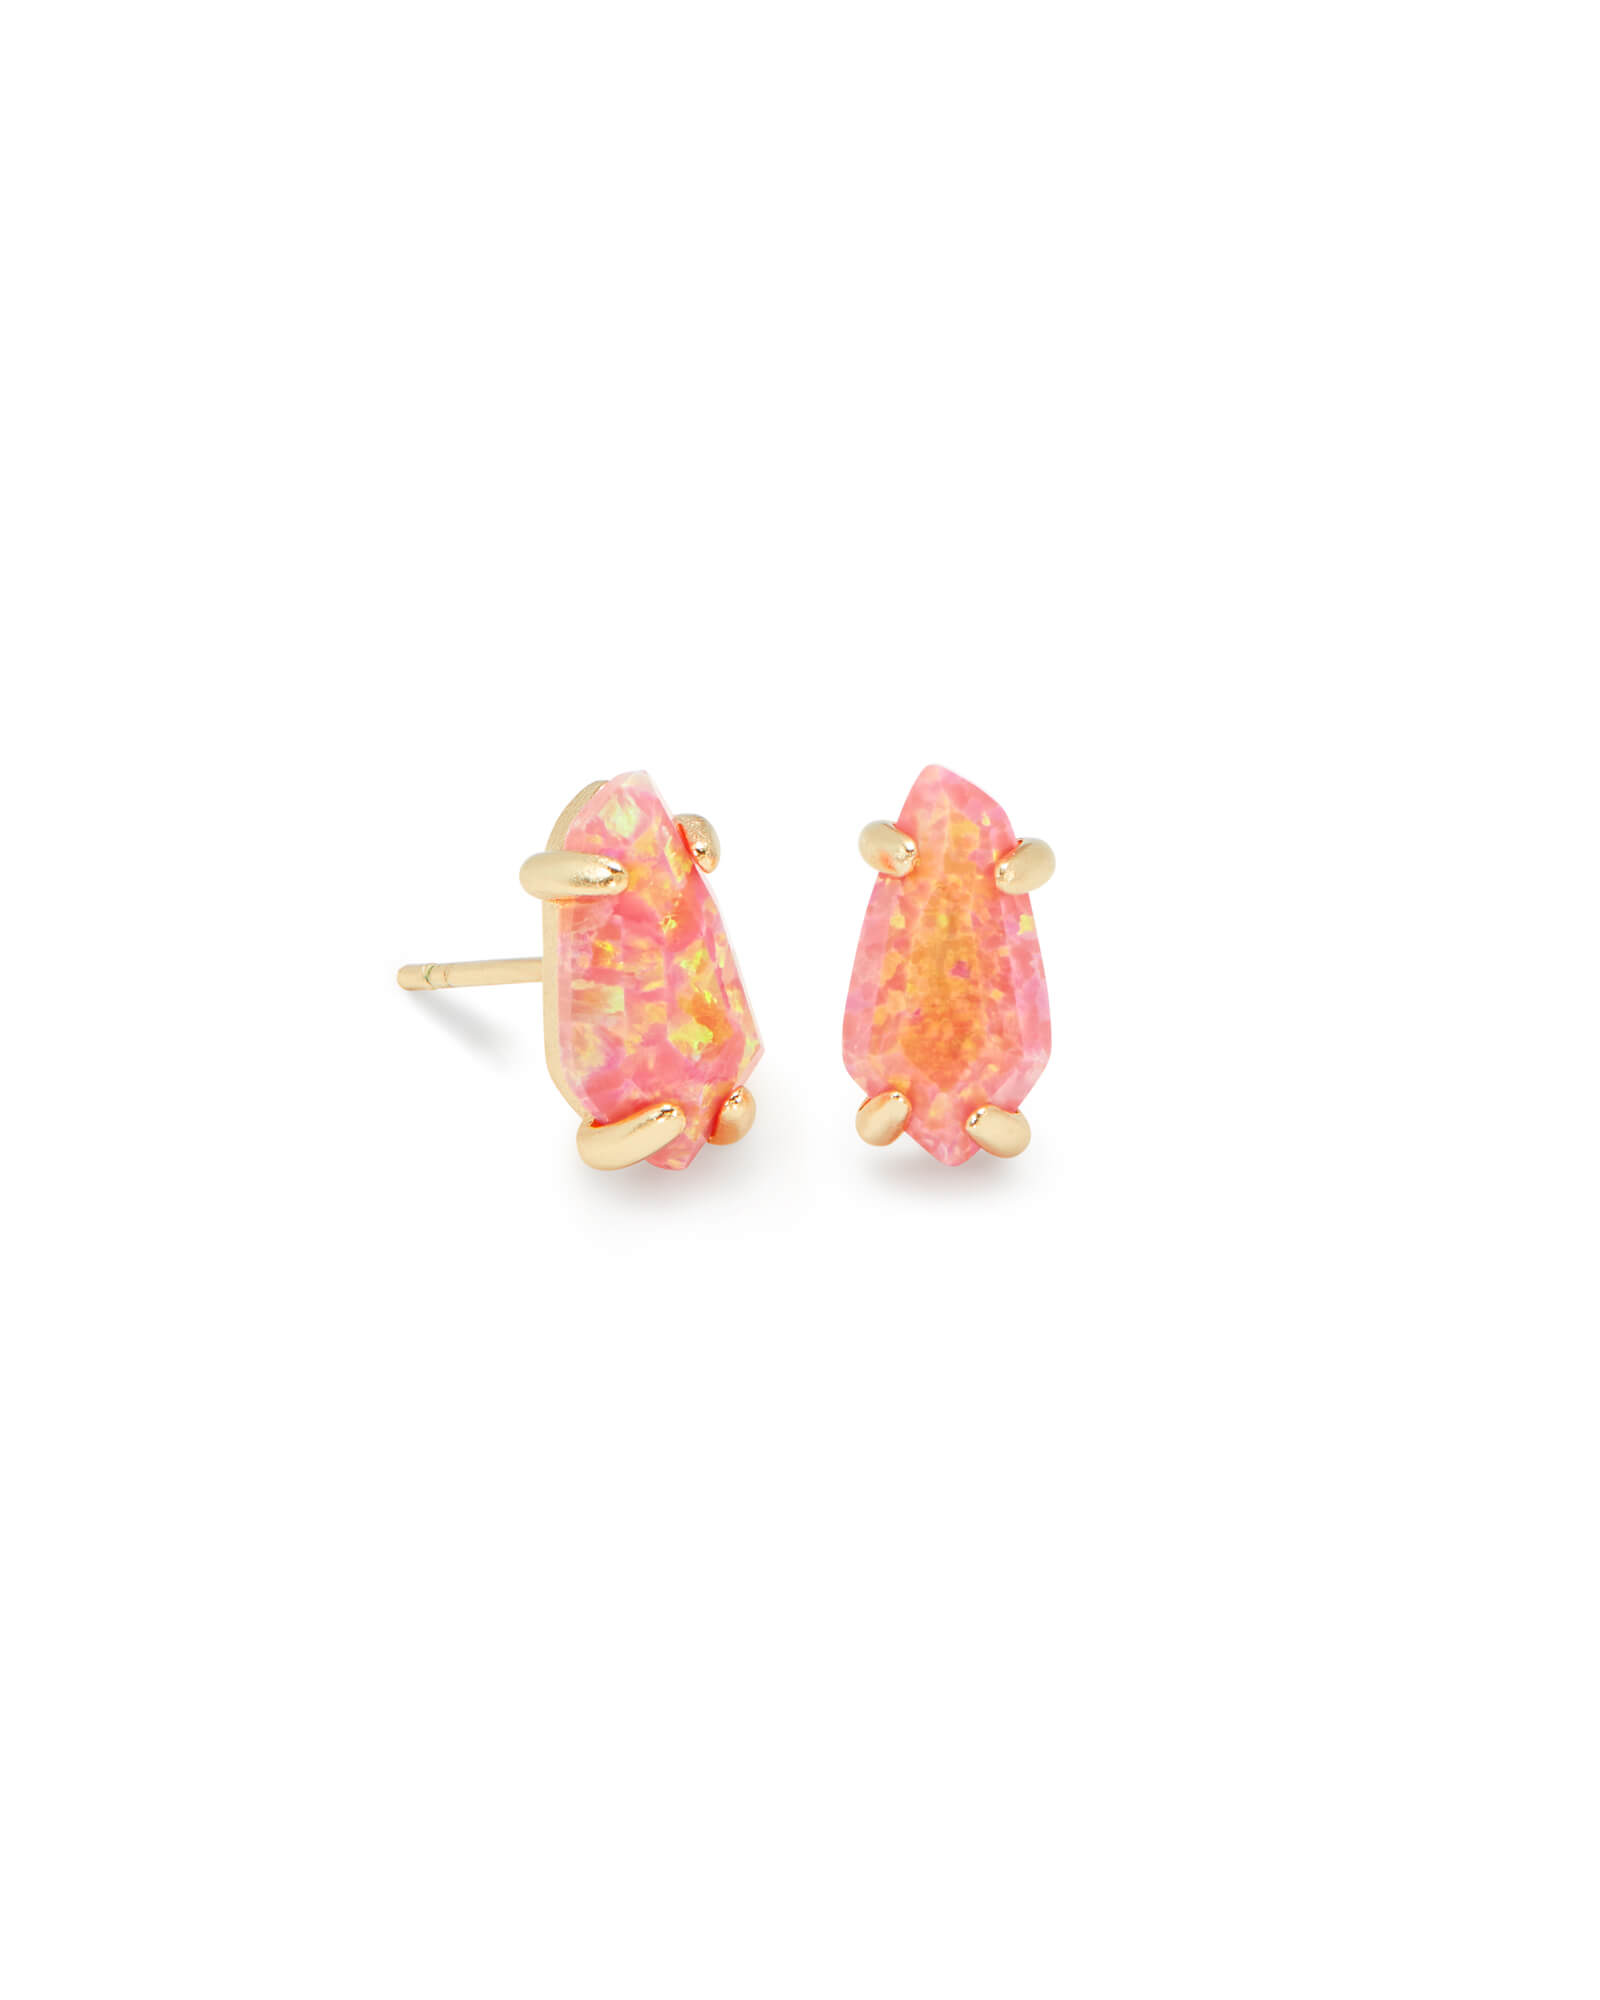 Jillian Gold Stud Earrings in Magenta Kyocera Opal